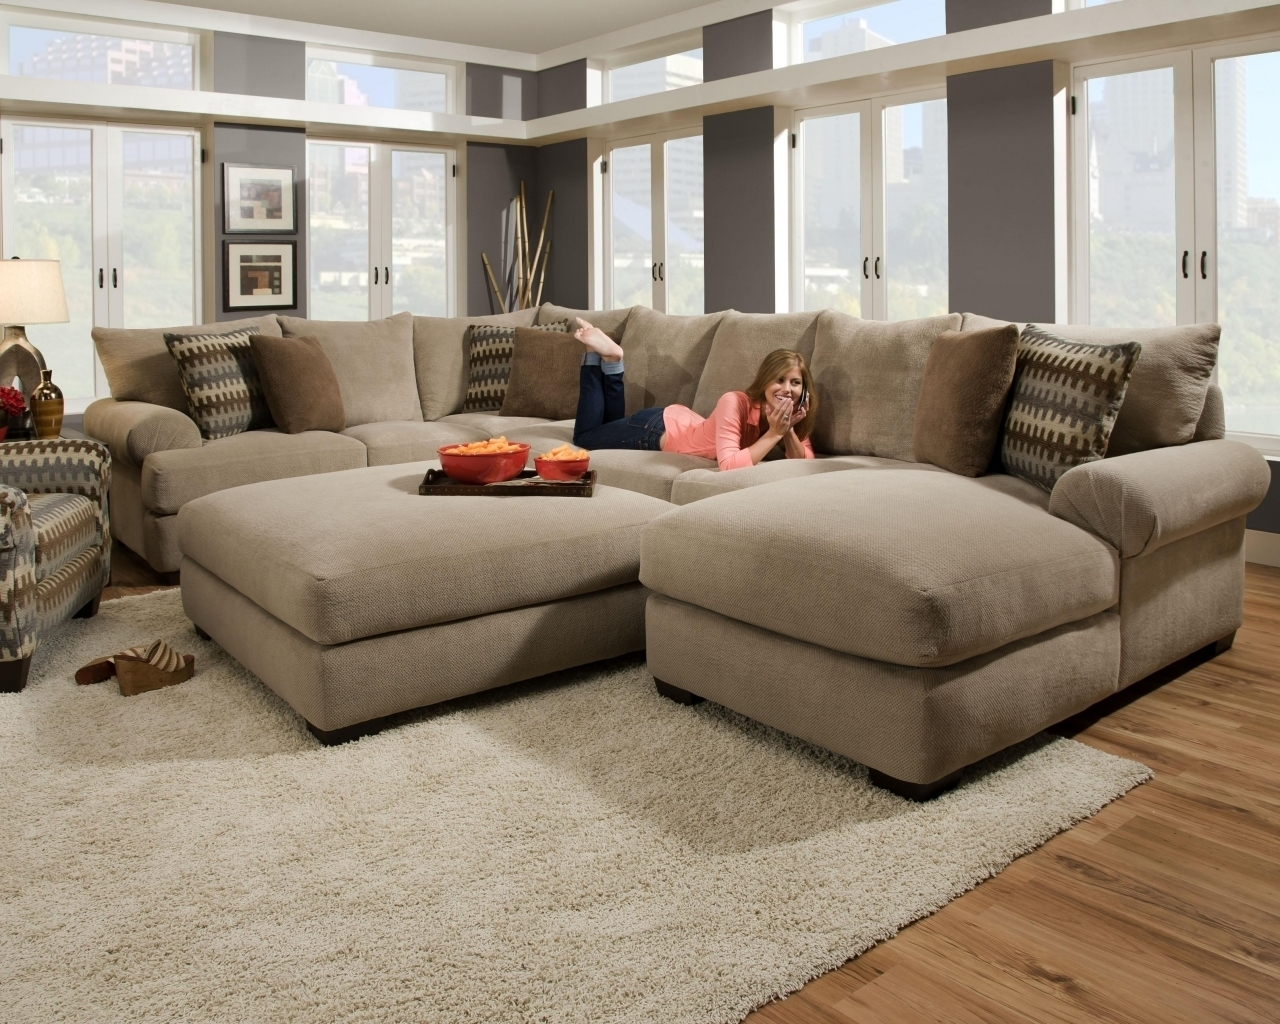 Amazing Sectional Sofa With Oversized Ottoman 59 For Your Best With Regard To Sectional Sofas With Oversized Ottoman (View 3 of 10)